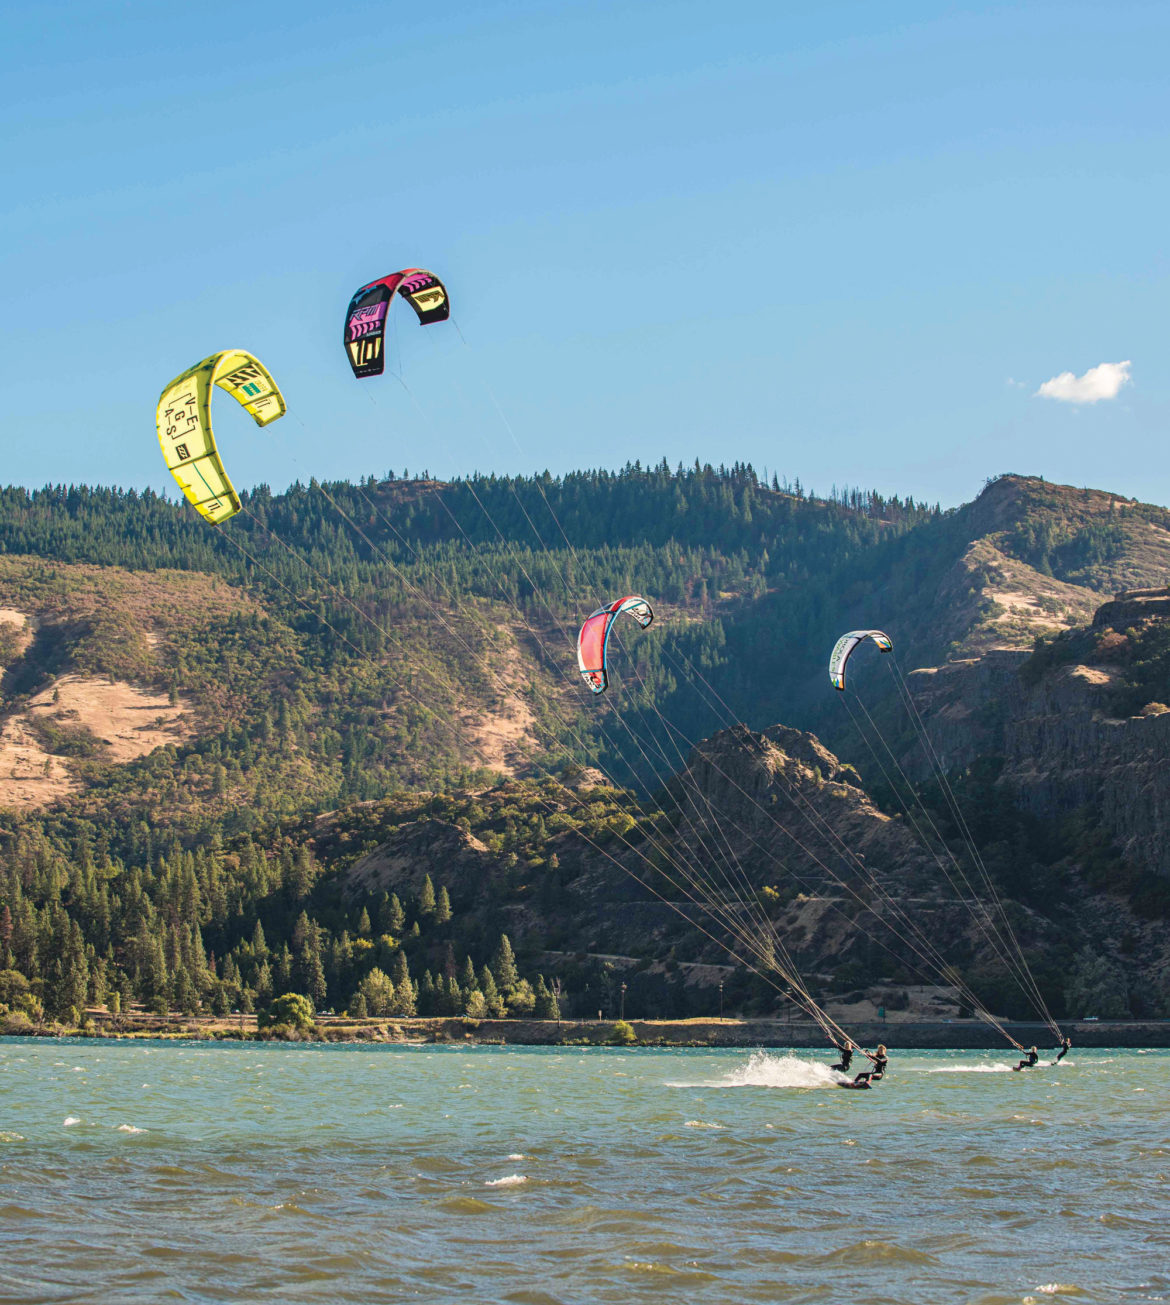 Kiteboarders harness the wind of the Columbia River Gorge, where wing foiling is helping beginners.